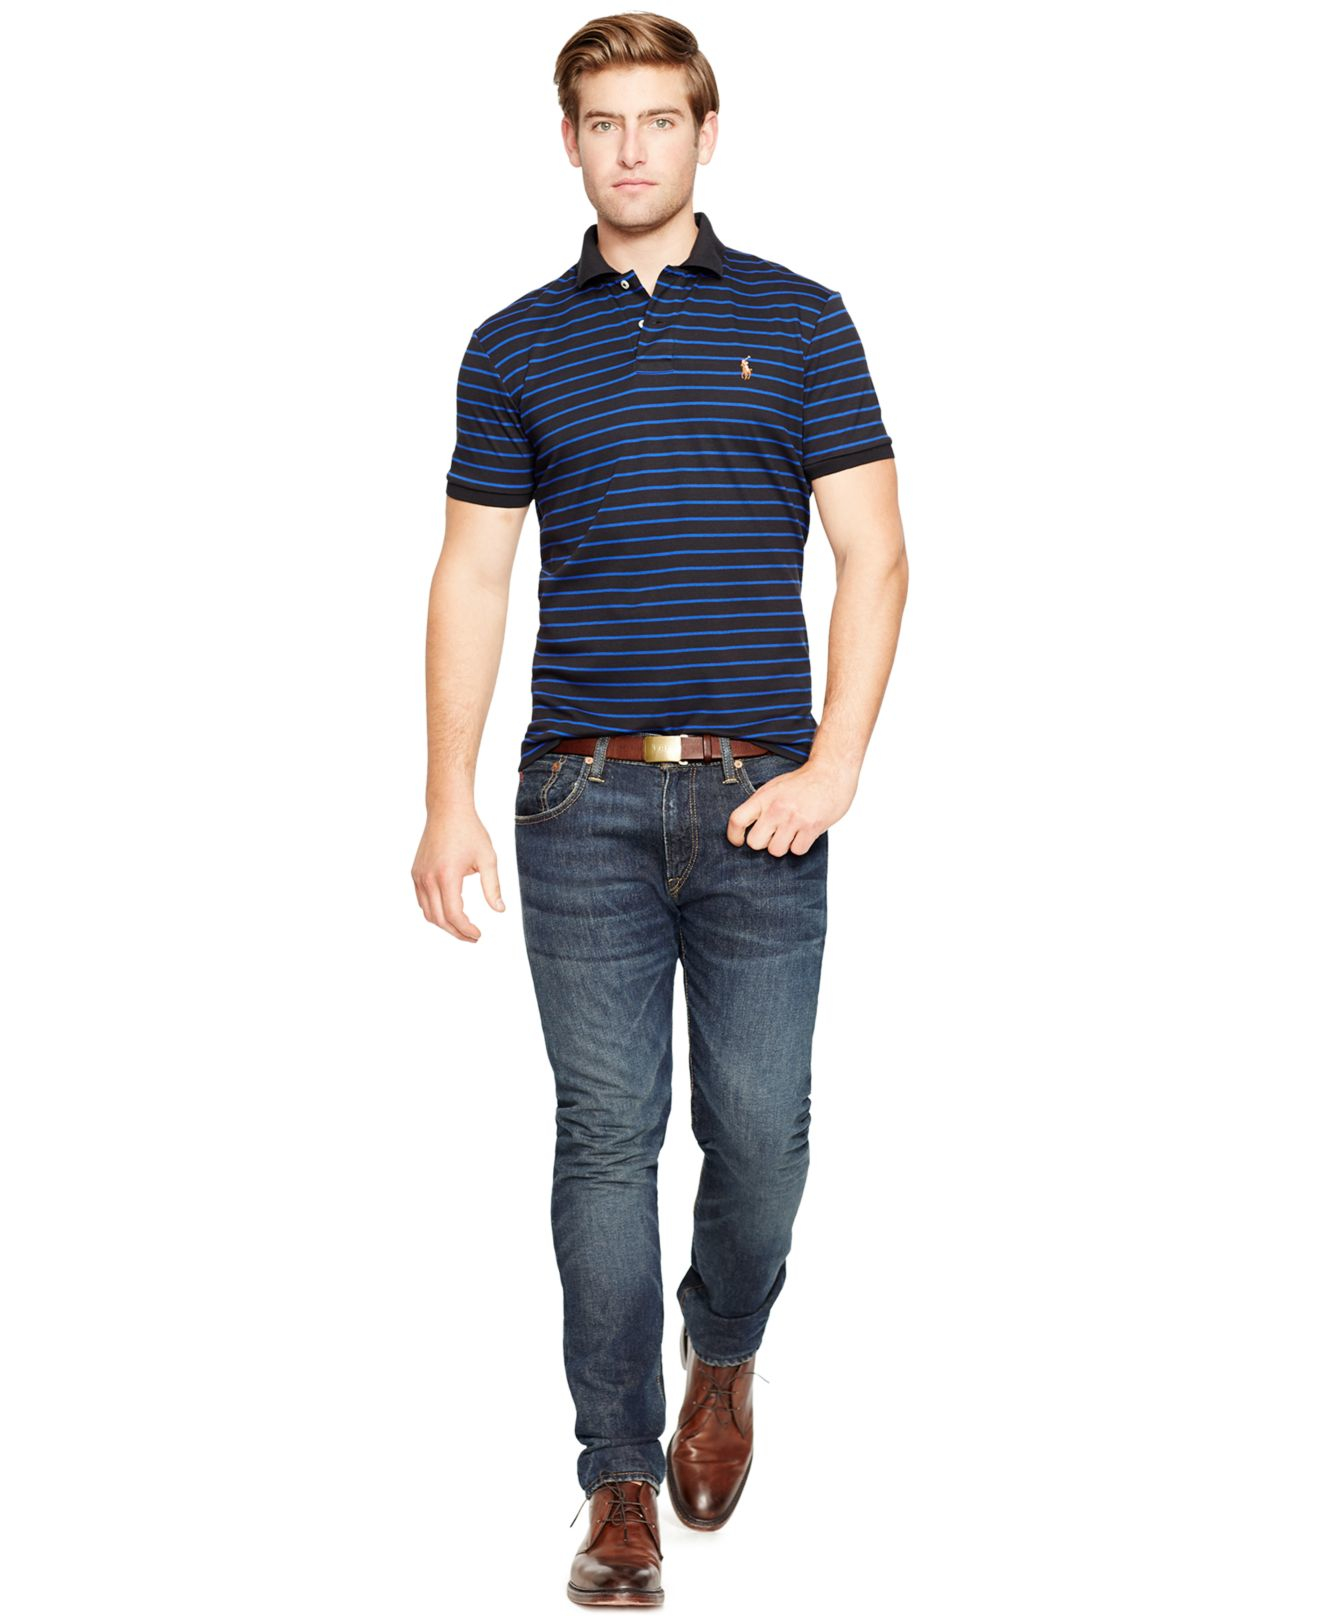 9976974c Polo Ralph Lauren Striped Pima Soft-touch Polo in Blue for Men - Lyst